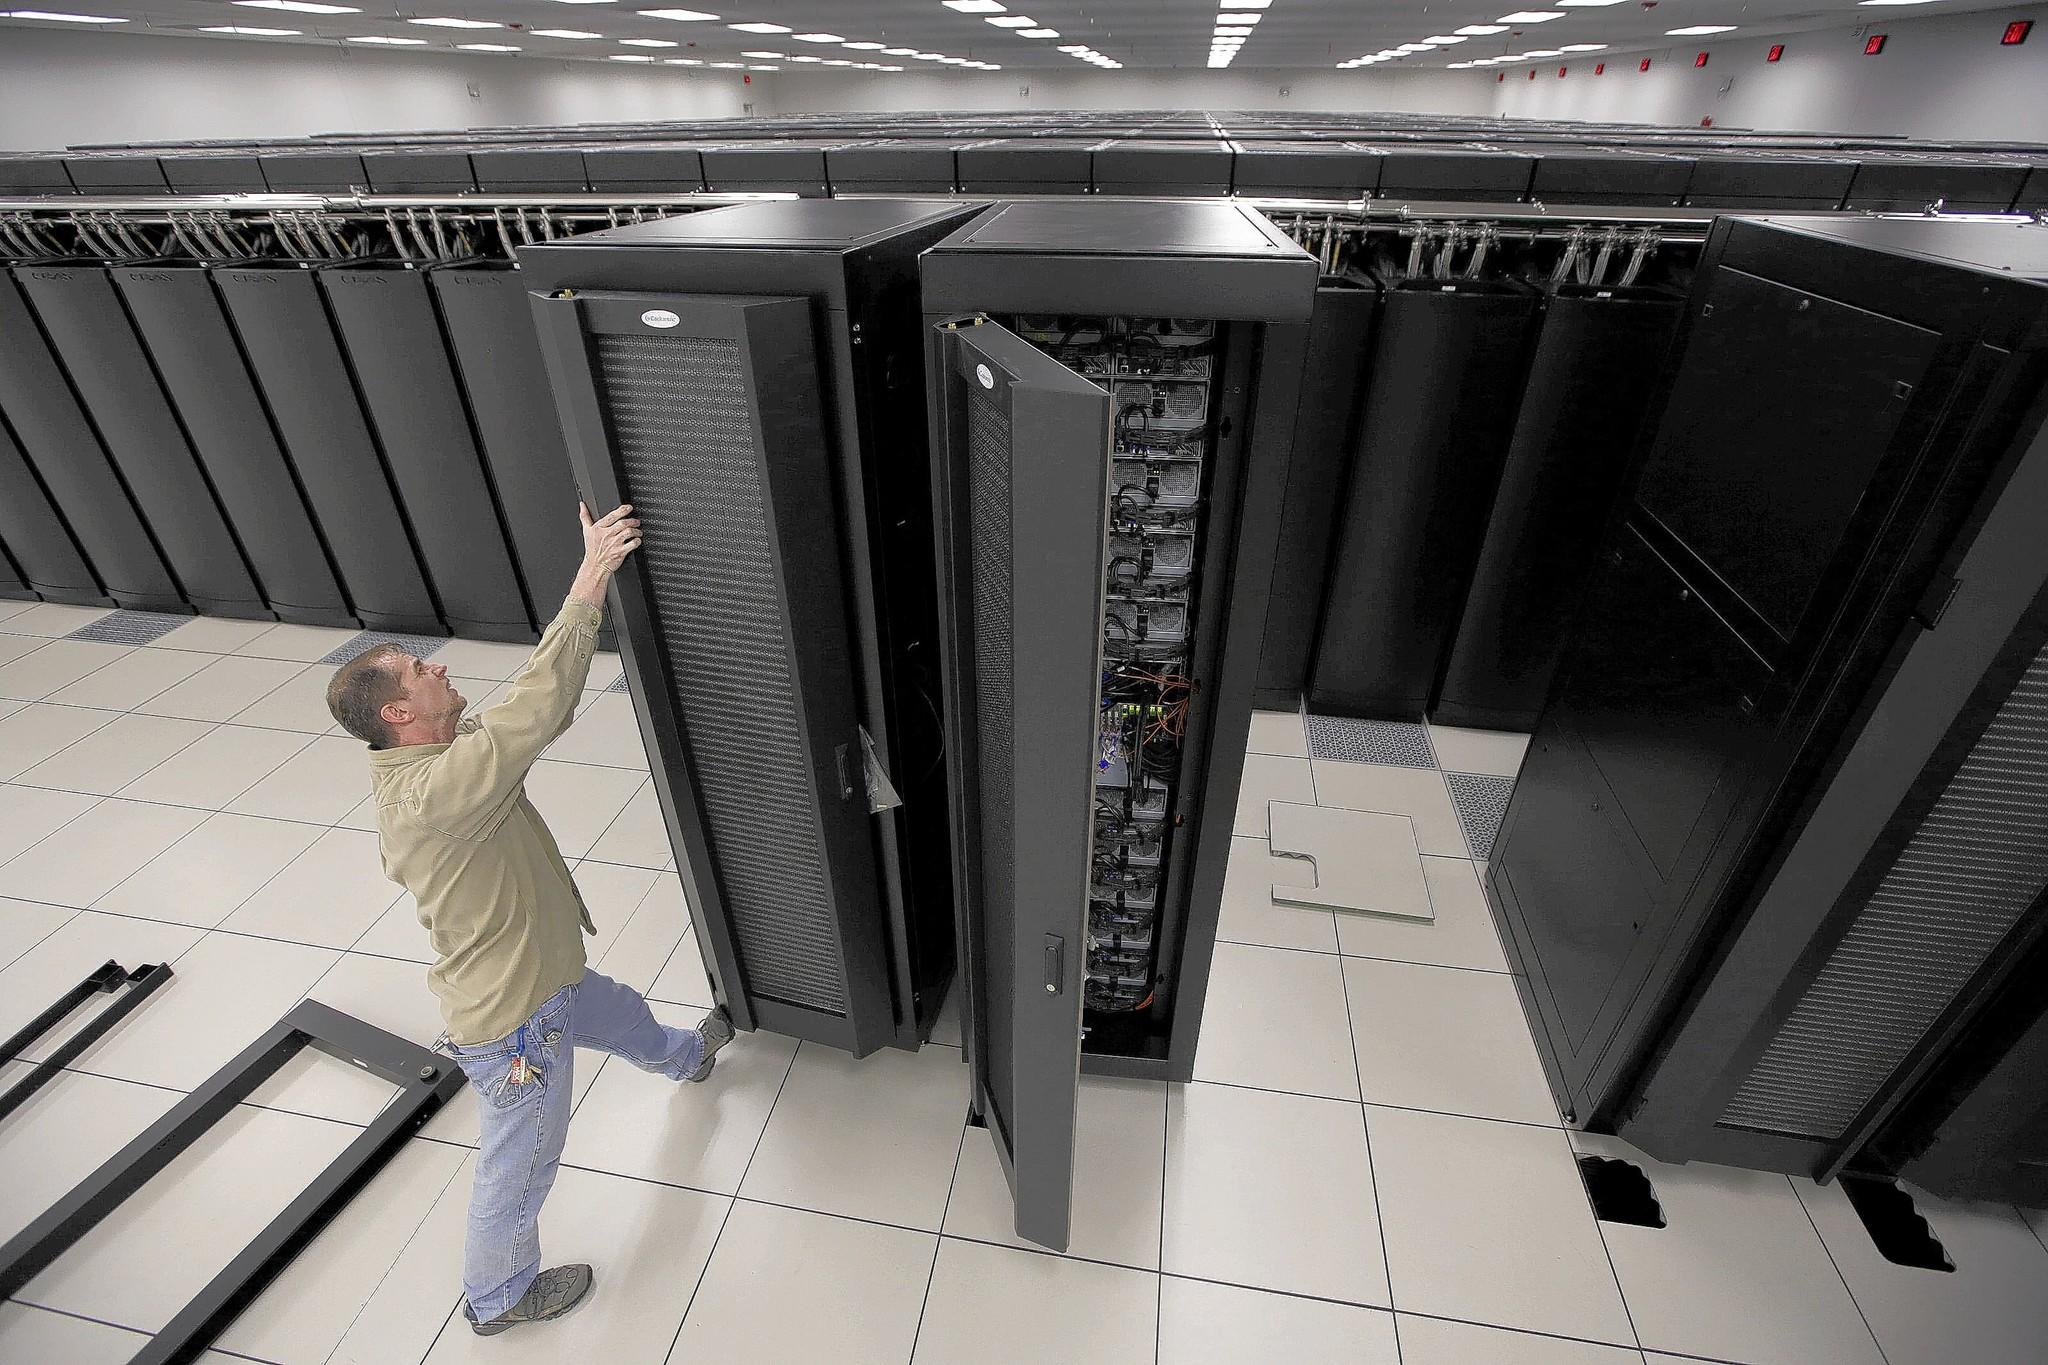 At the University of Illinois at Urbana-Champaign, data archive administrator Jim Glasgow installs water cooling doors this month on two racks at the Blue Waters supercomputer, one of the world's most powerful.